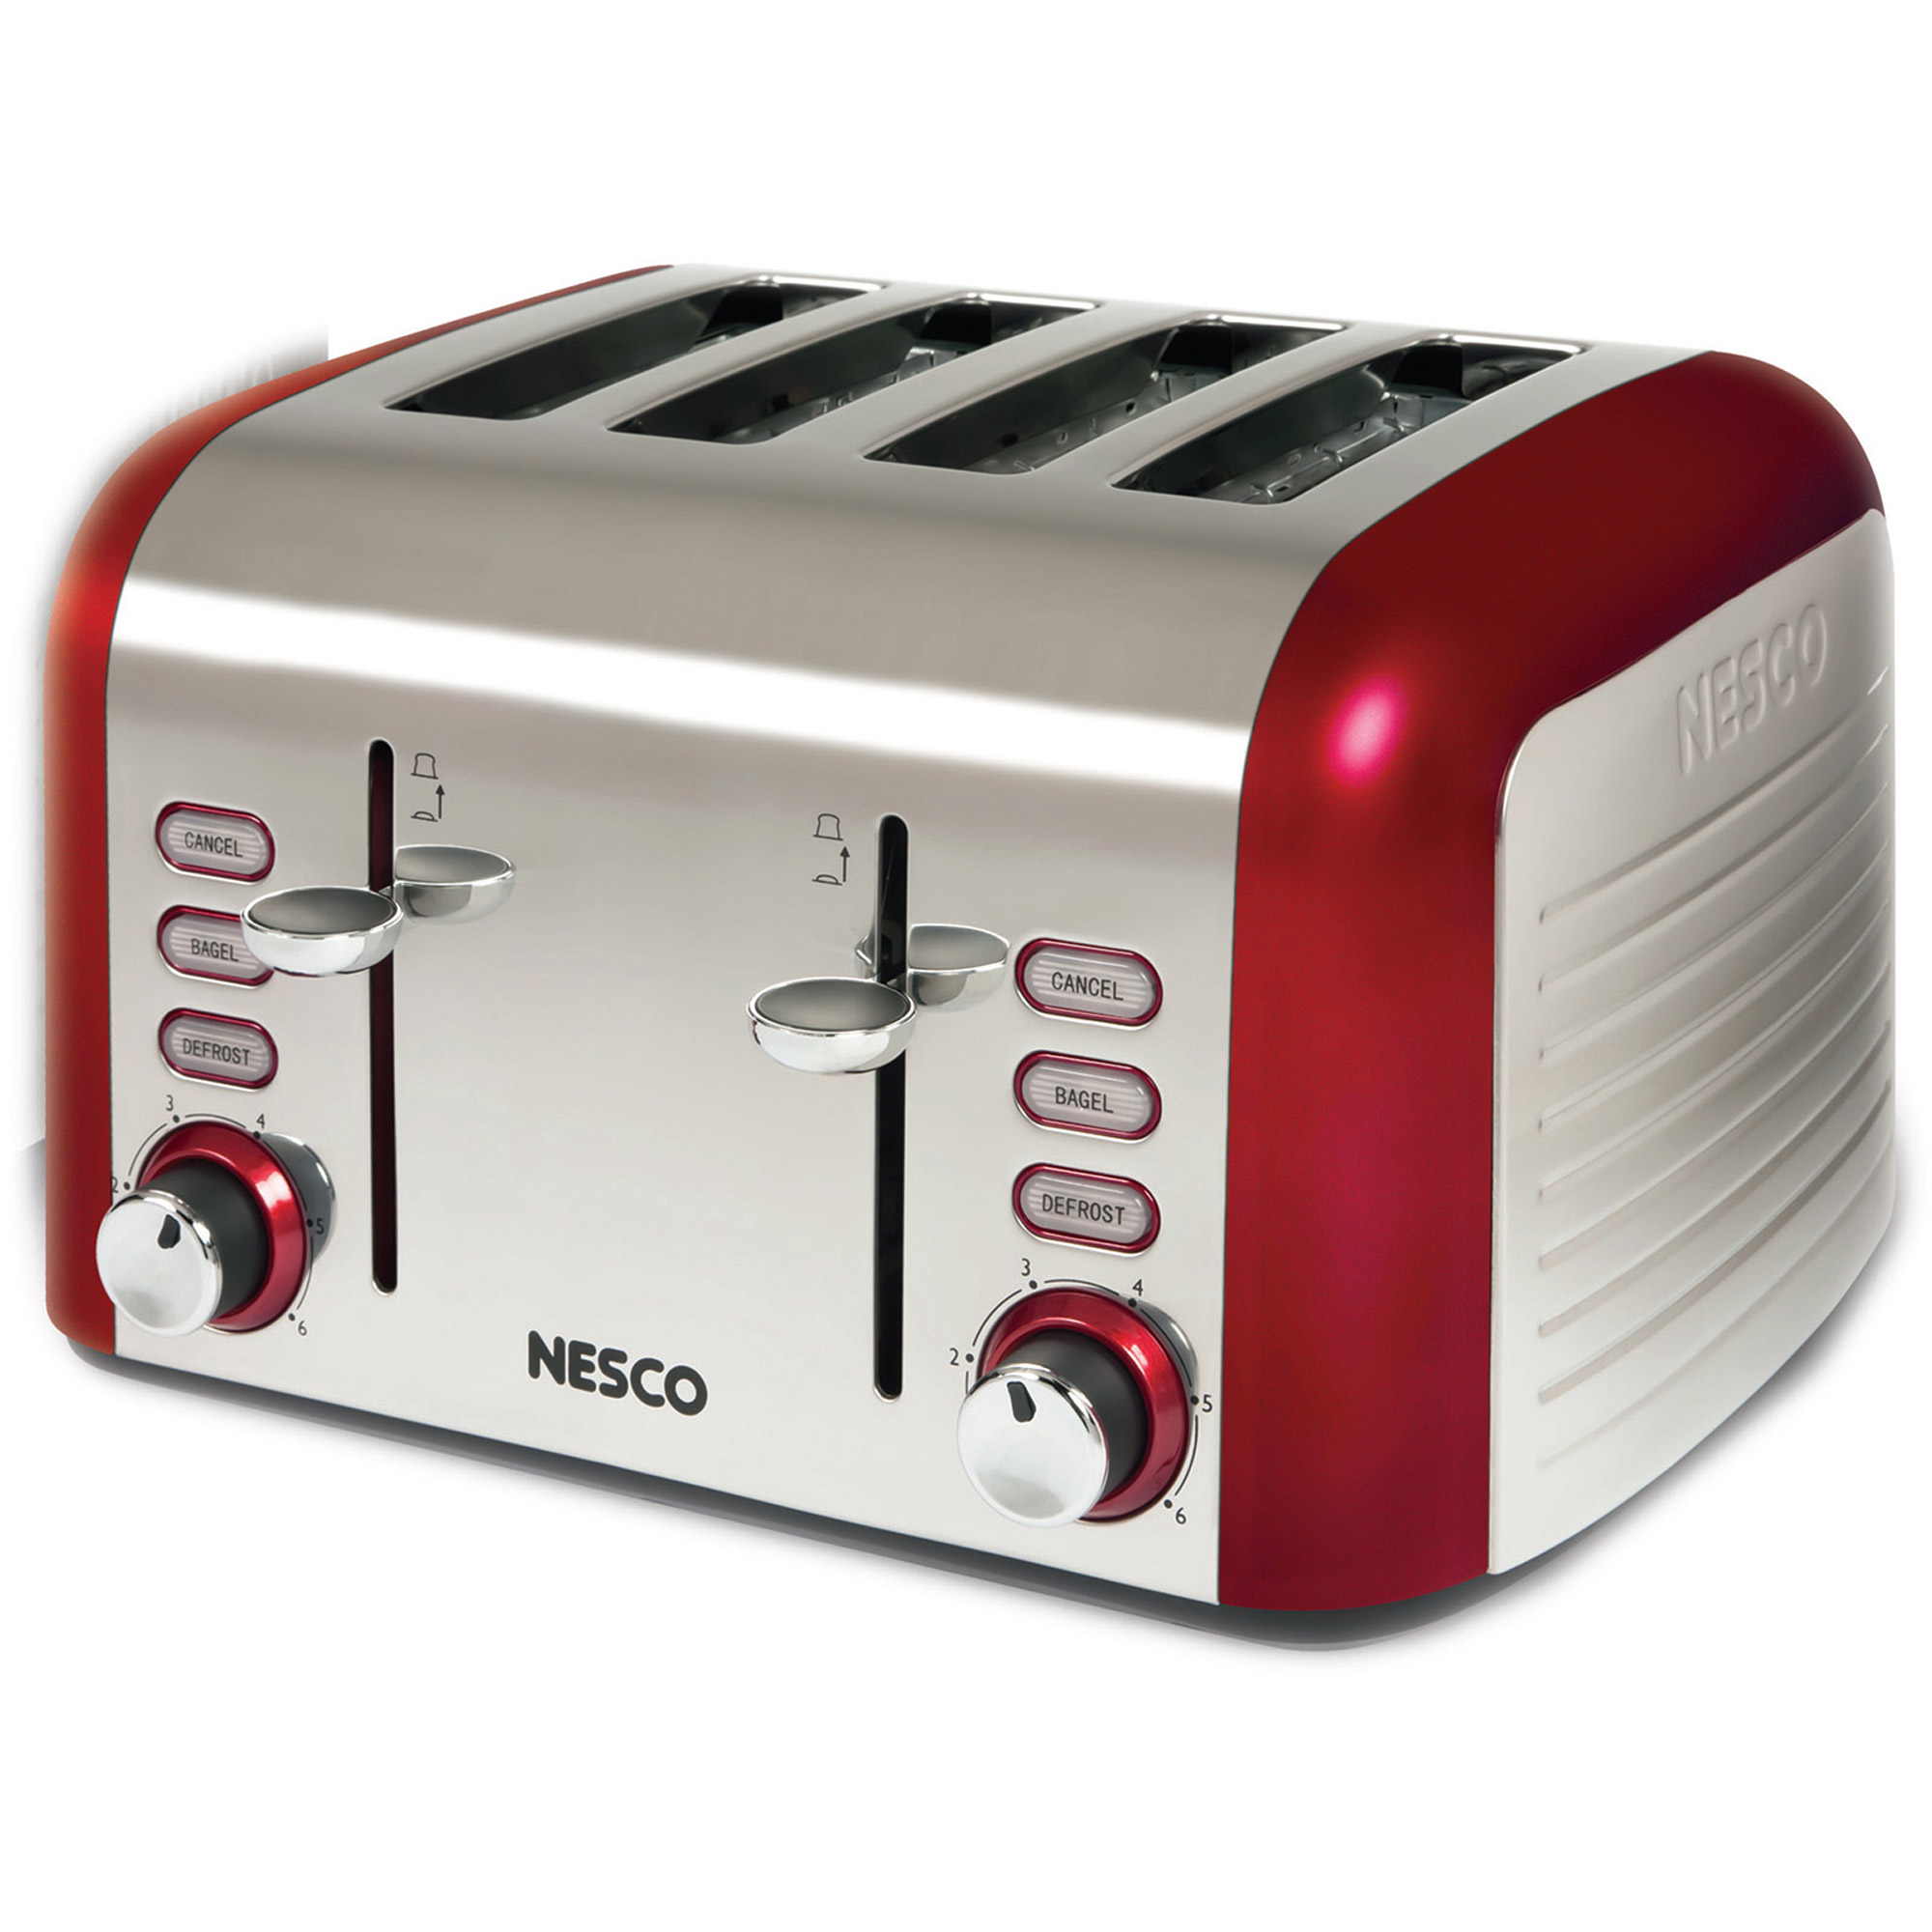 Nesco 4-Slice Stainless Steel Toaster